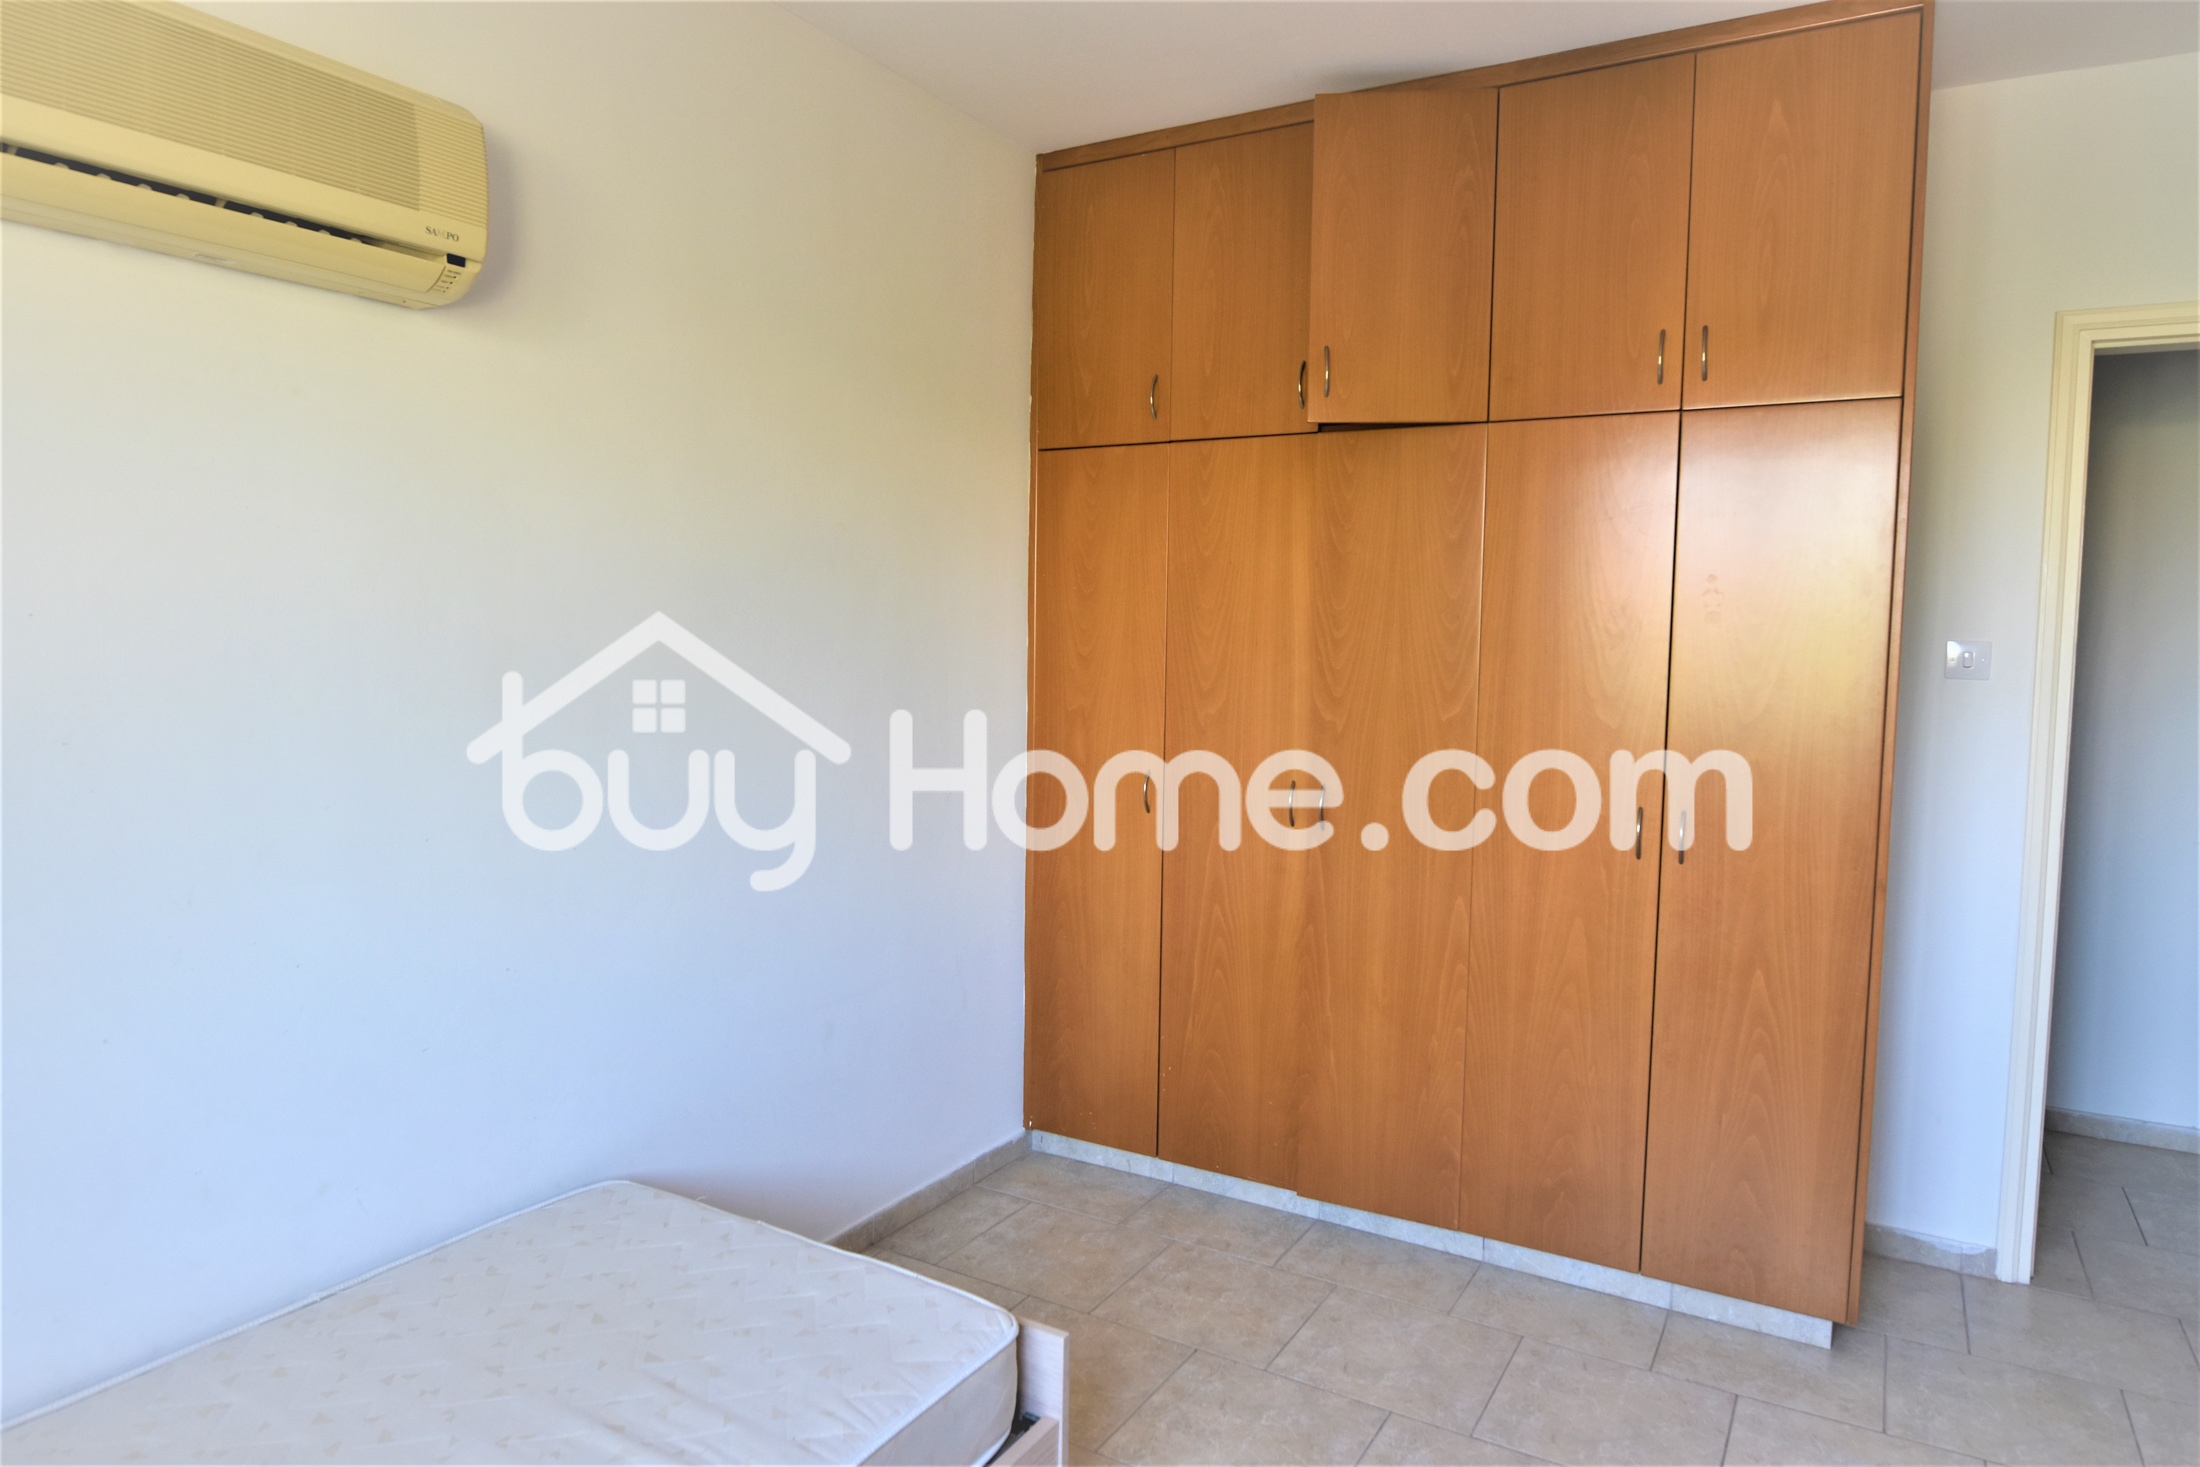 2 Bedroom Apartment With A Pool | BuyHome